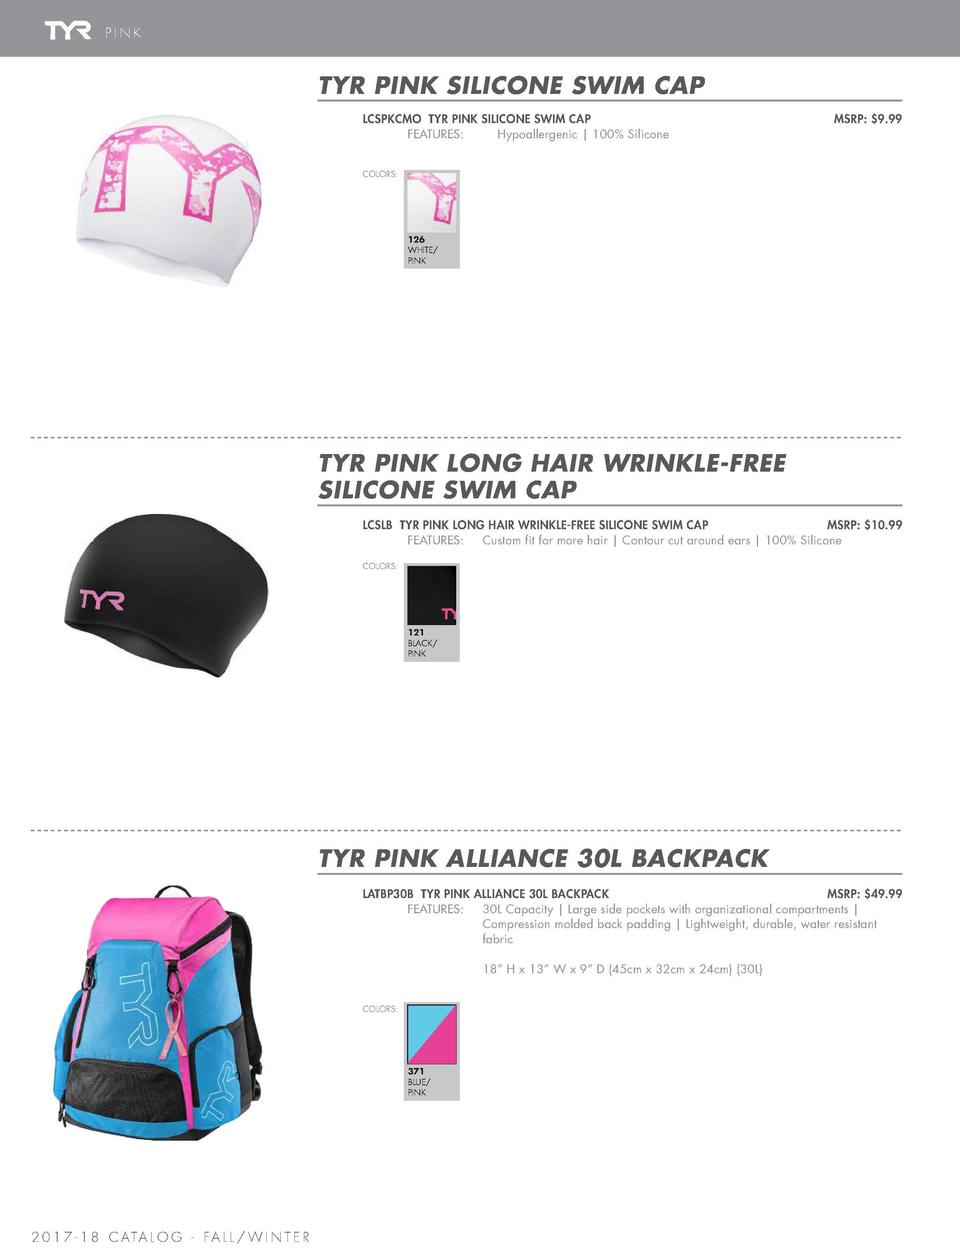 SWIM CAPS   BAG   EQUIPMENT  PINK  TYR PINK ULTRALITE SNORKEL 2.0  TYR PINK SILICONE SWIM CAP LCSPKCMO TYR PINK SILICONE S...